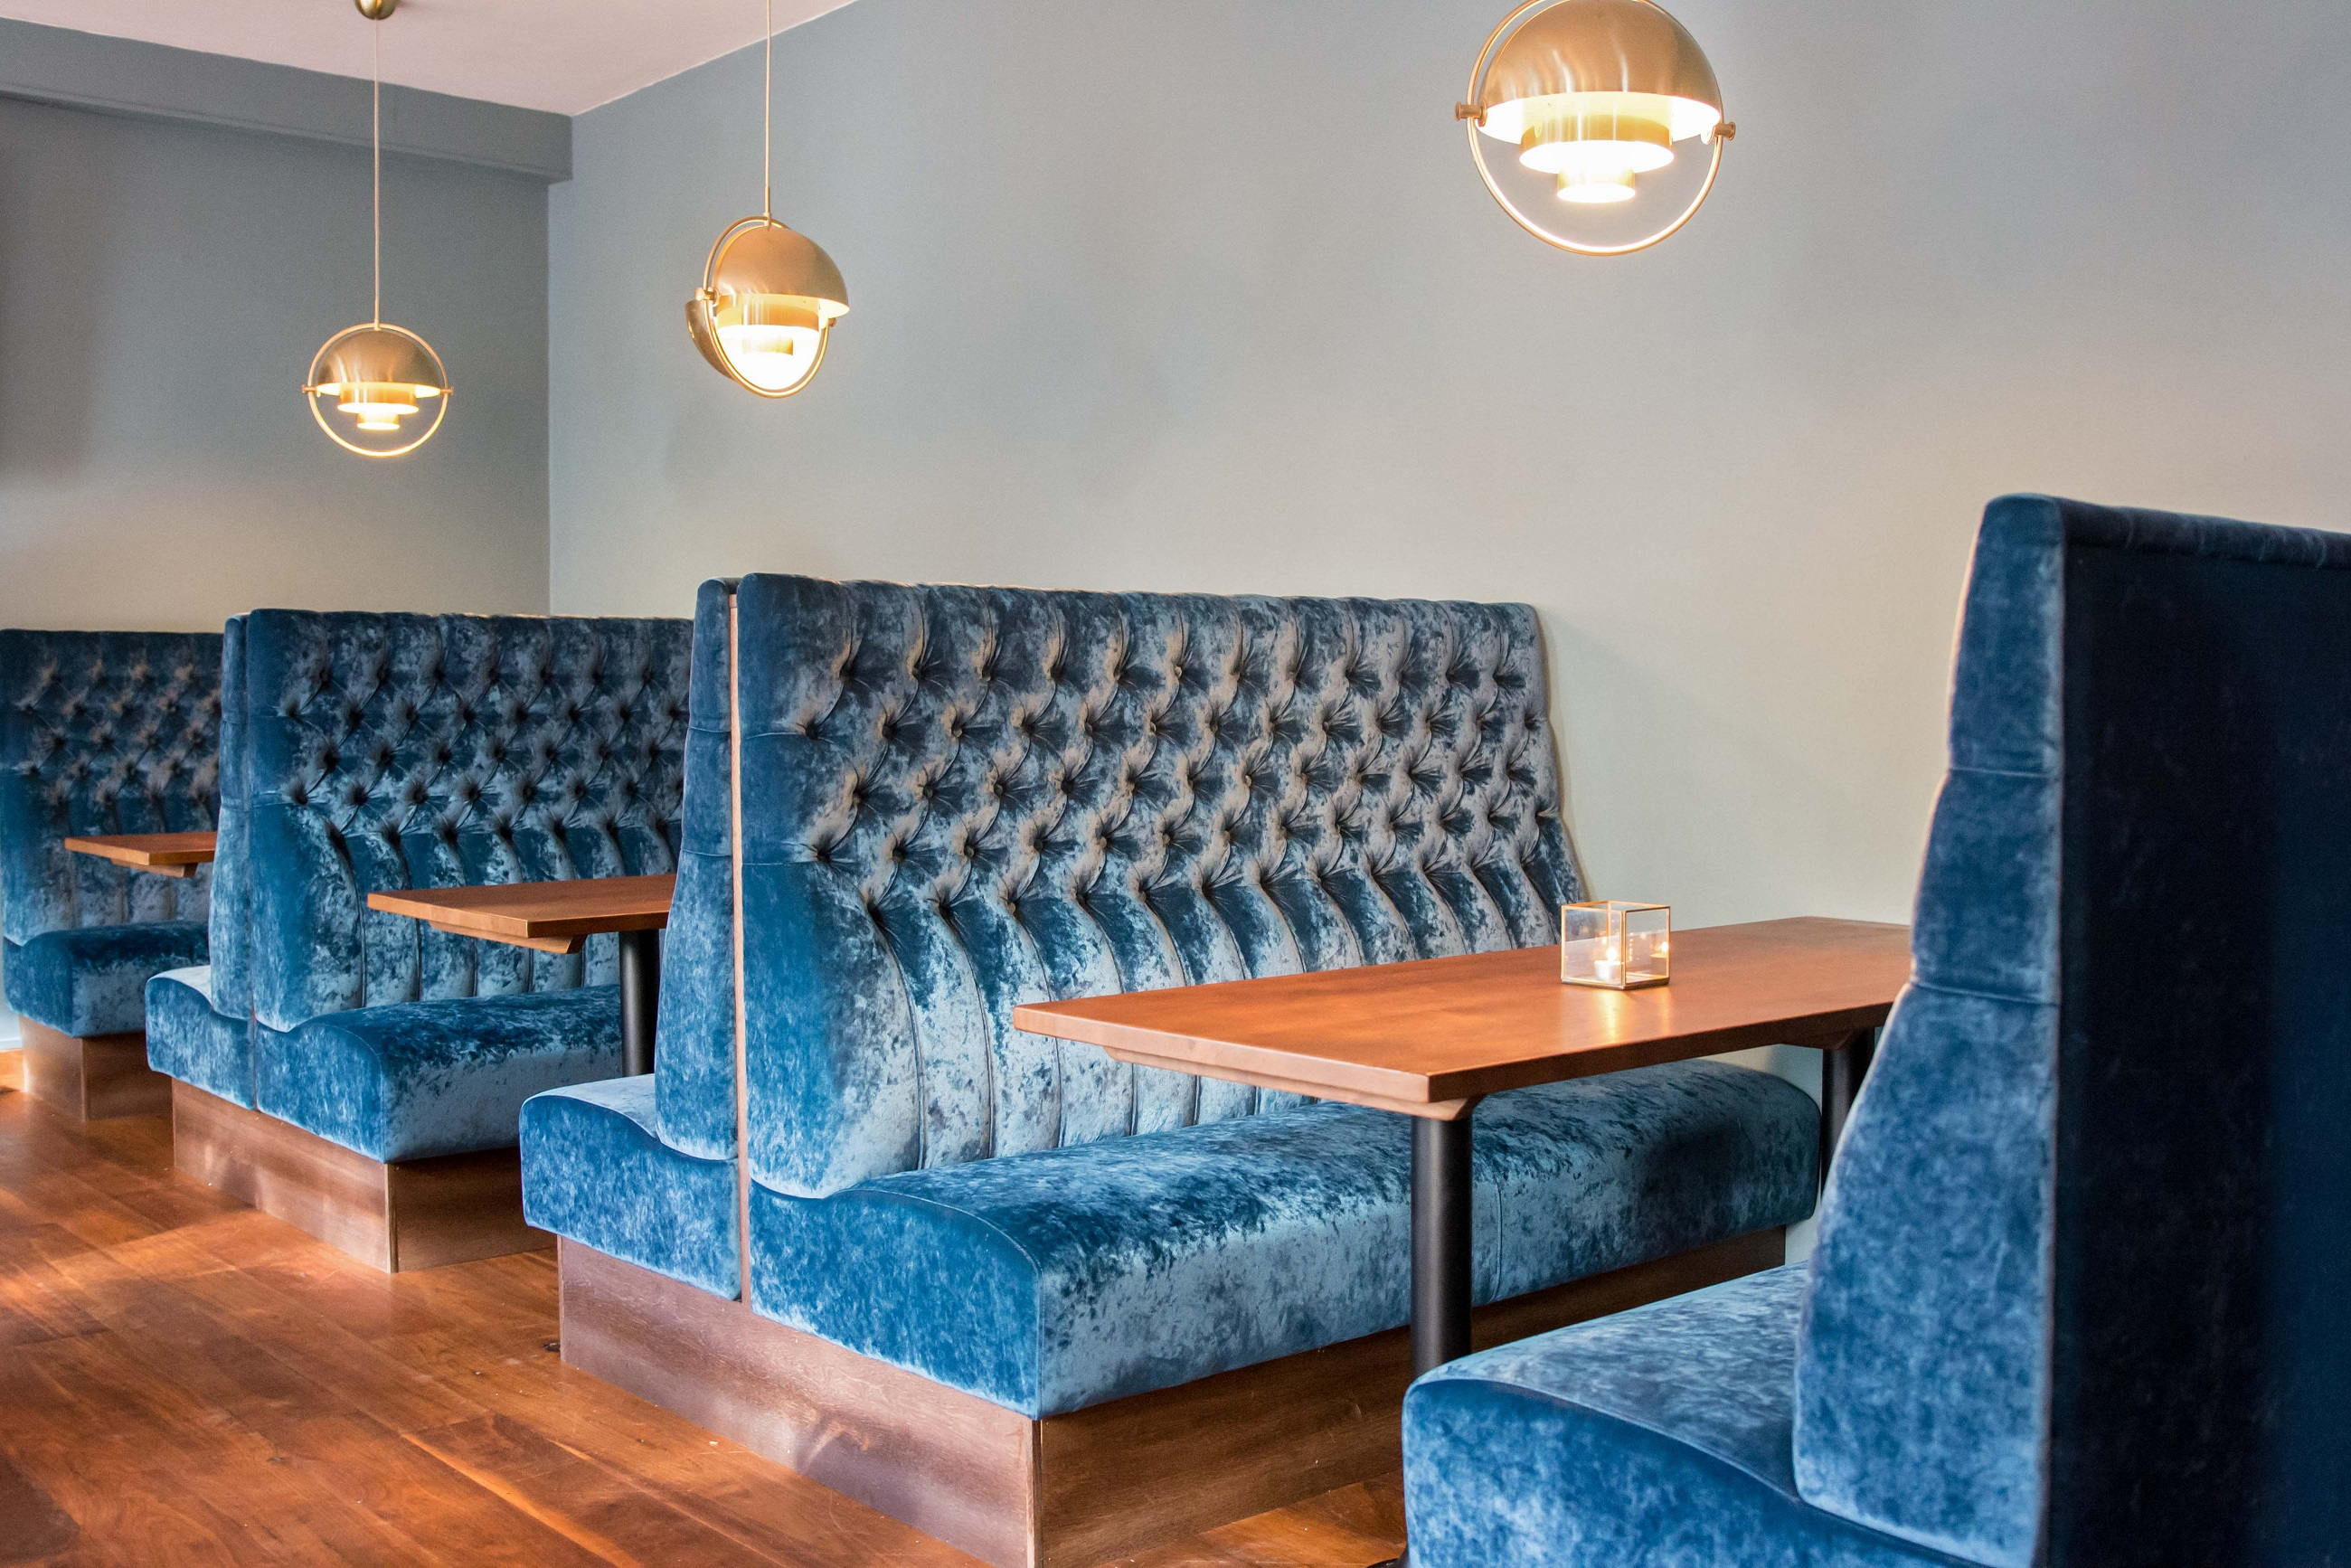 Banquette Seating in Blue Crushed Velvet